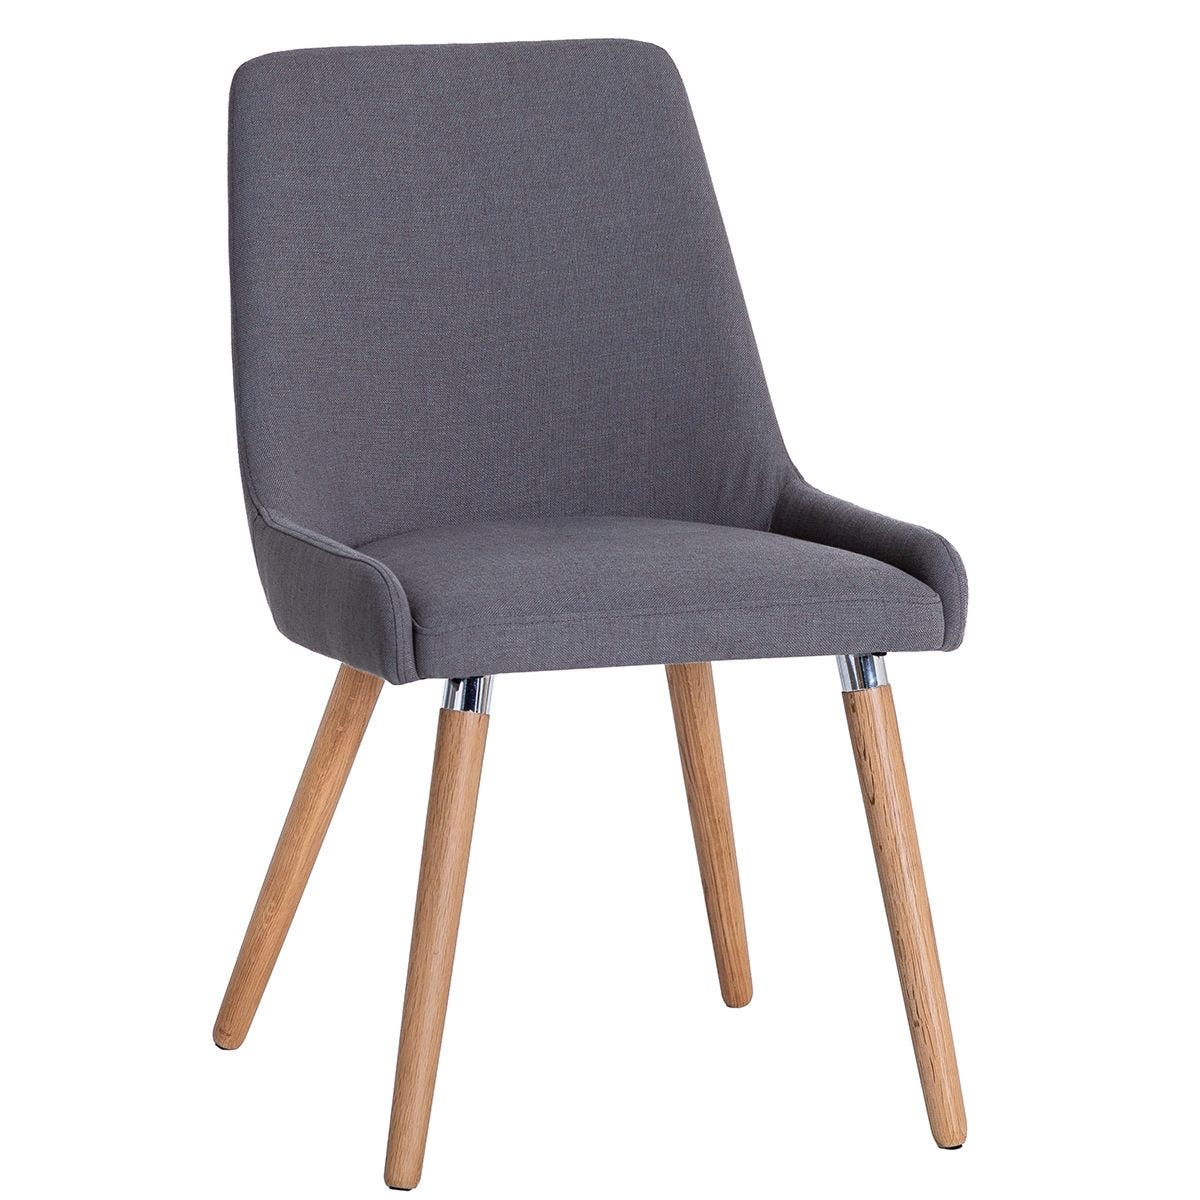 Retro Dining Chairs 2 Pack - Grey